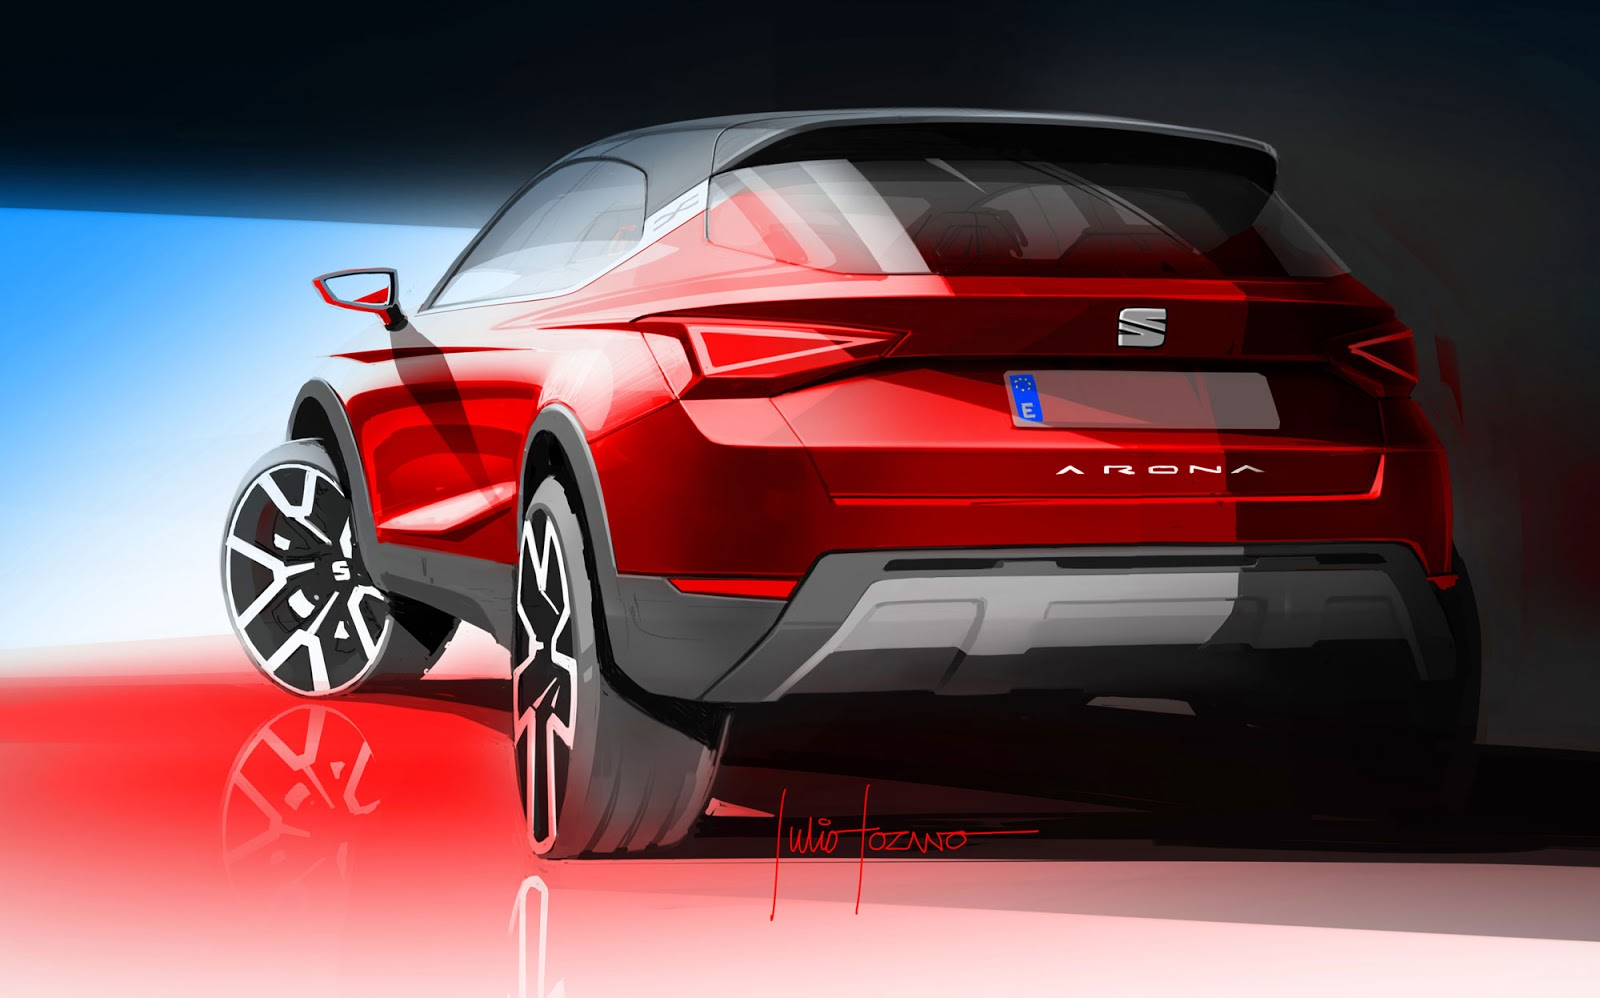 Seat Arona sketch by Julio Lozano, showing the tail